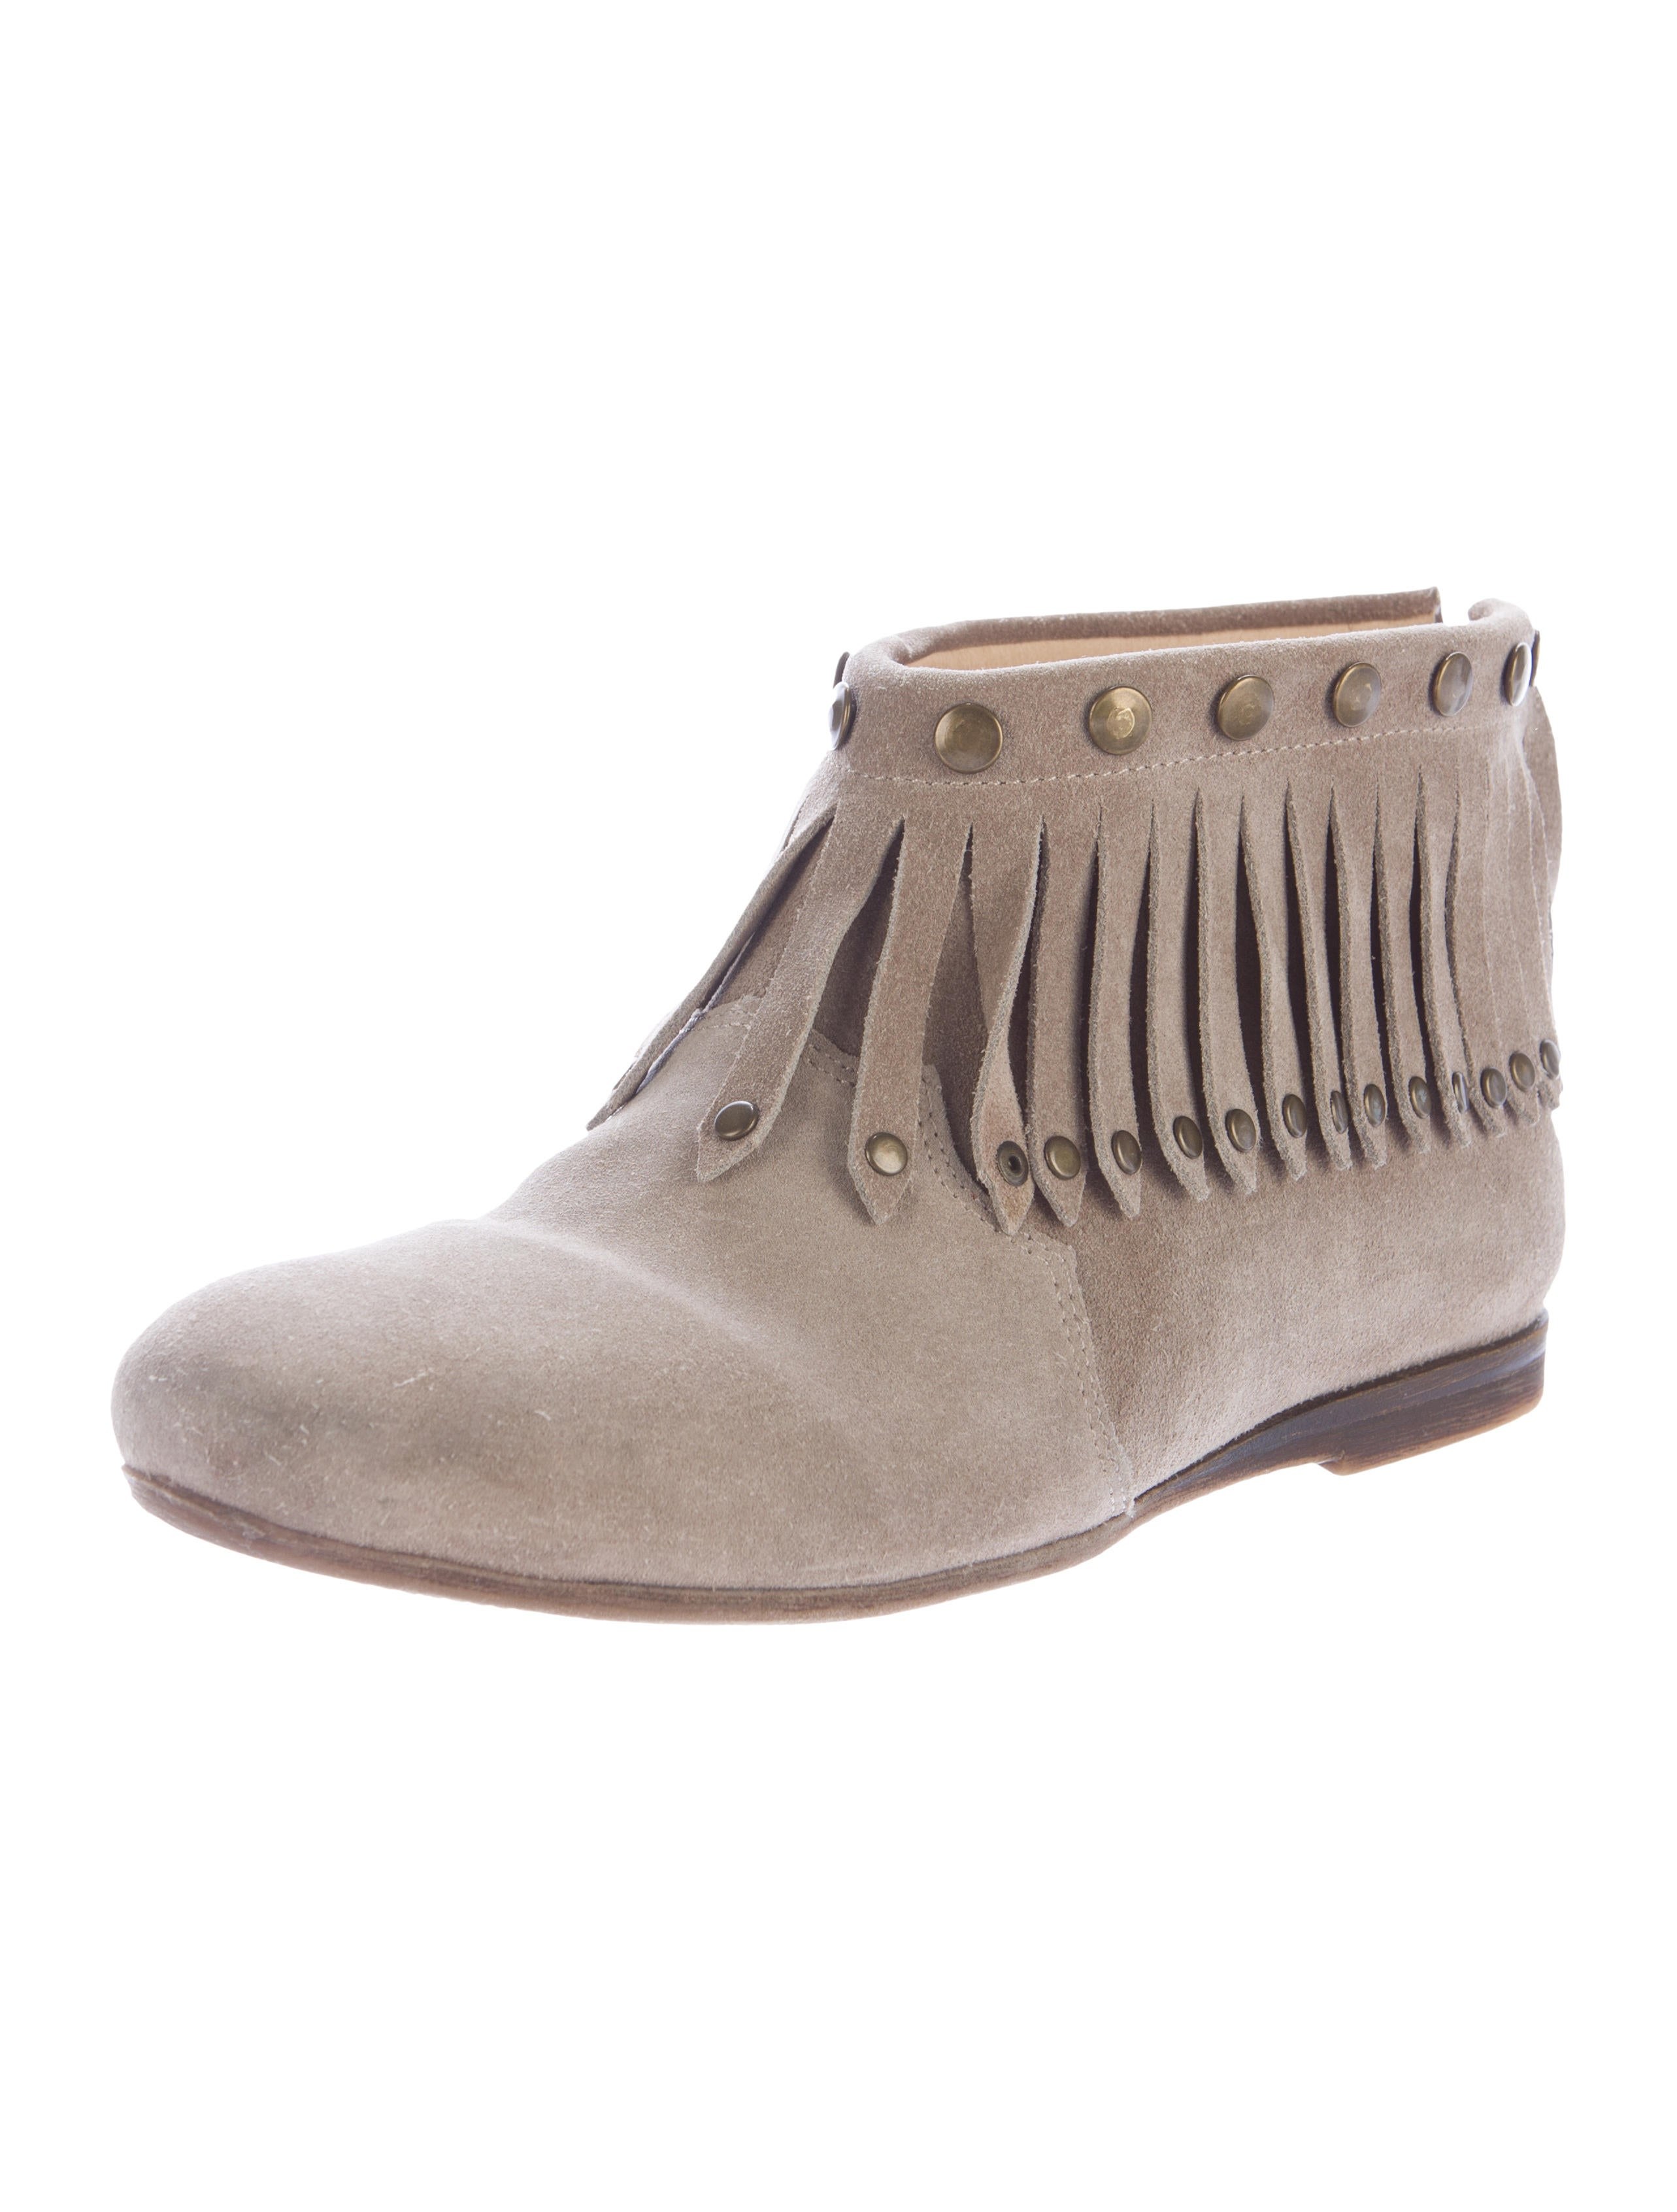 anine suede fringed ankle boots shoes w6o20132